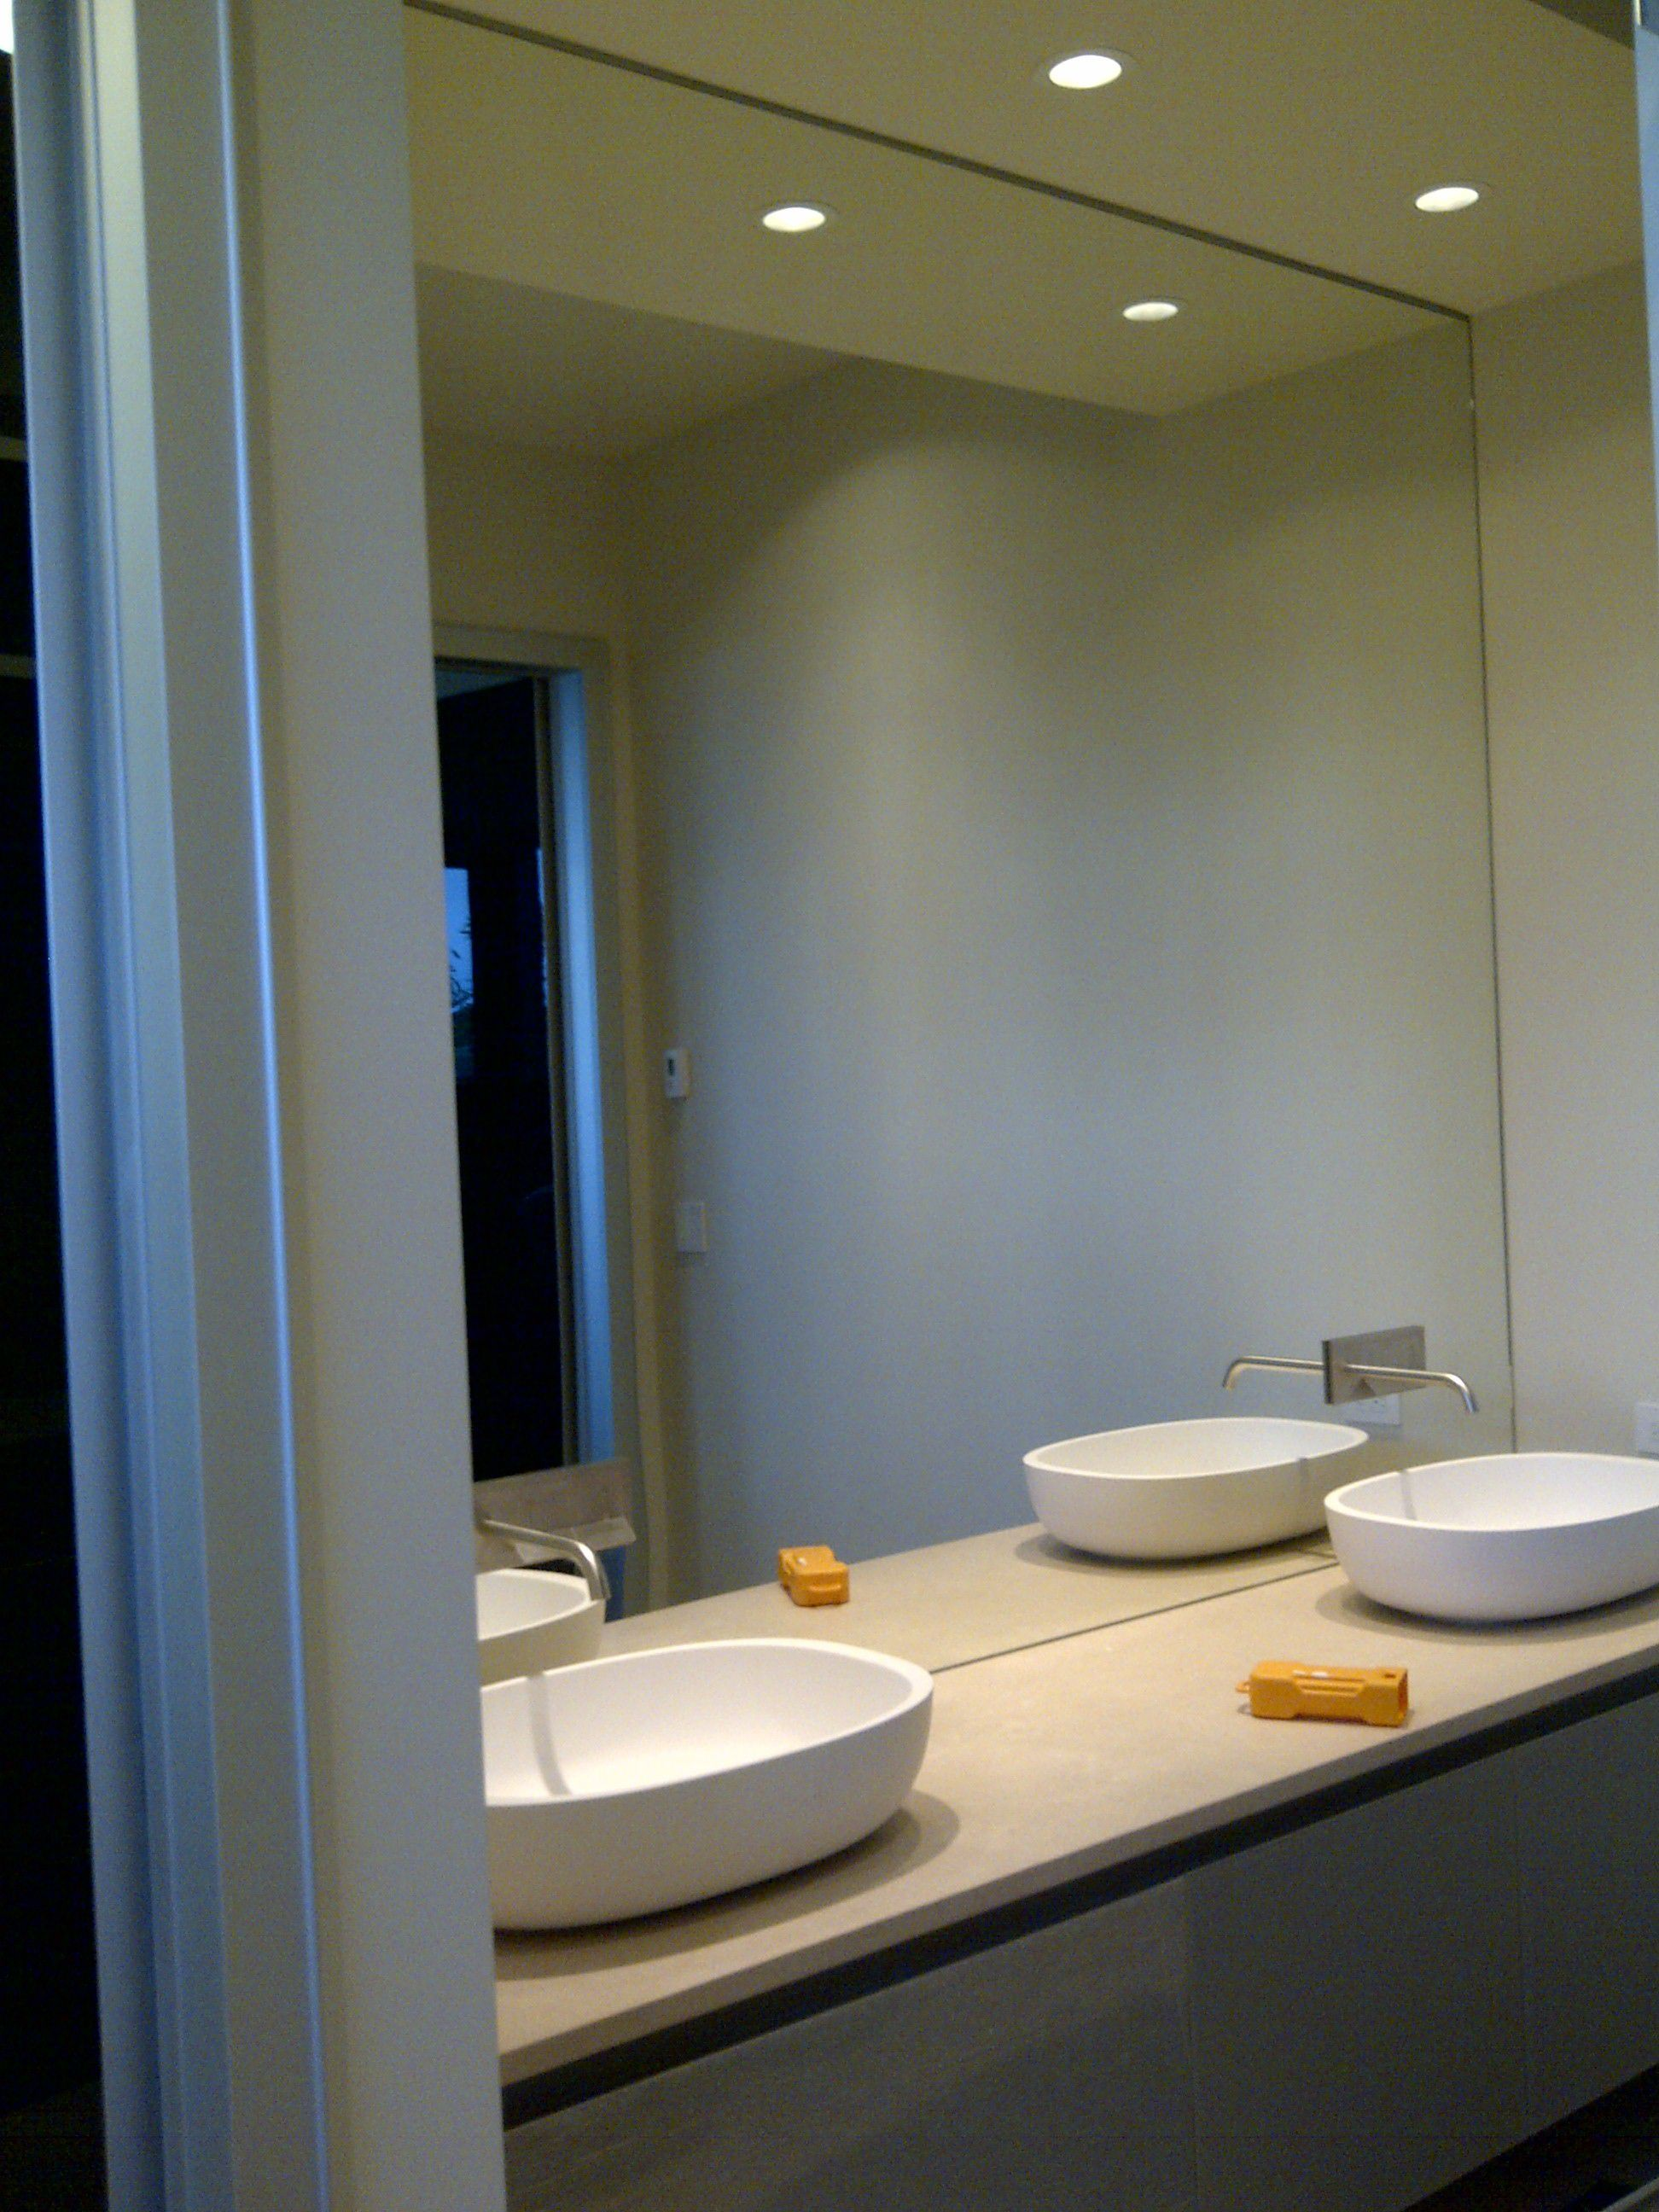 Bathroom with mirrors